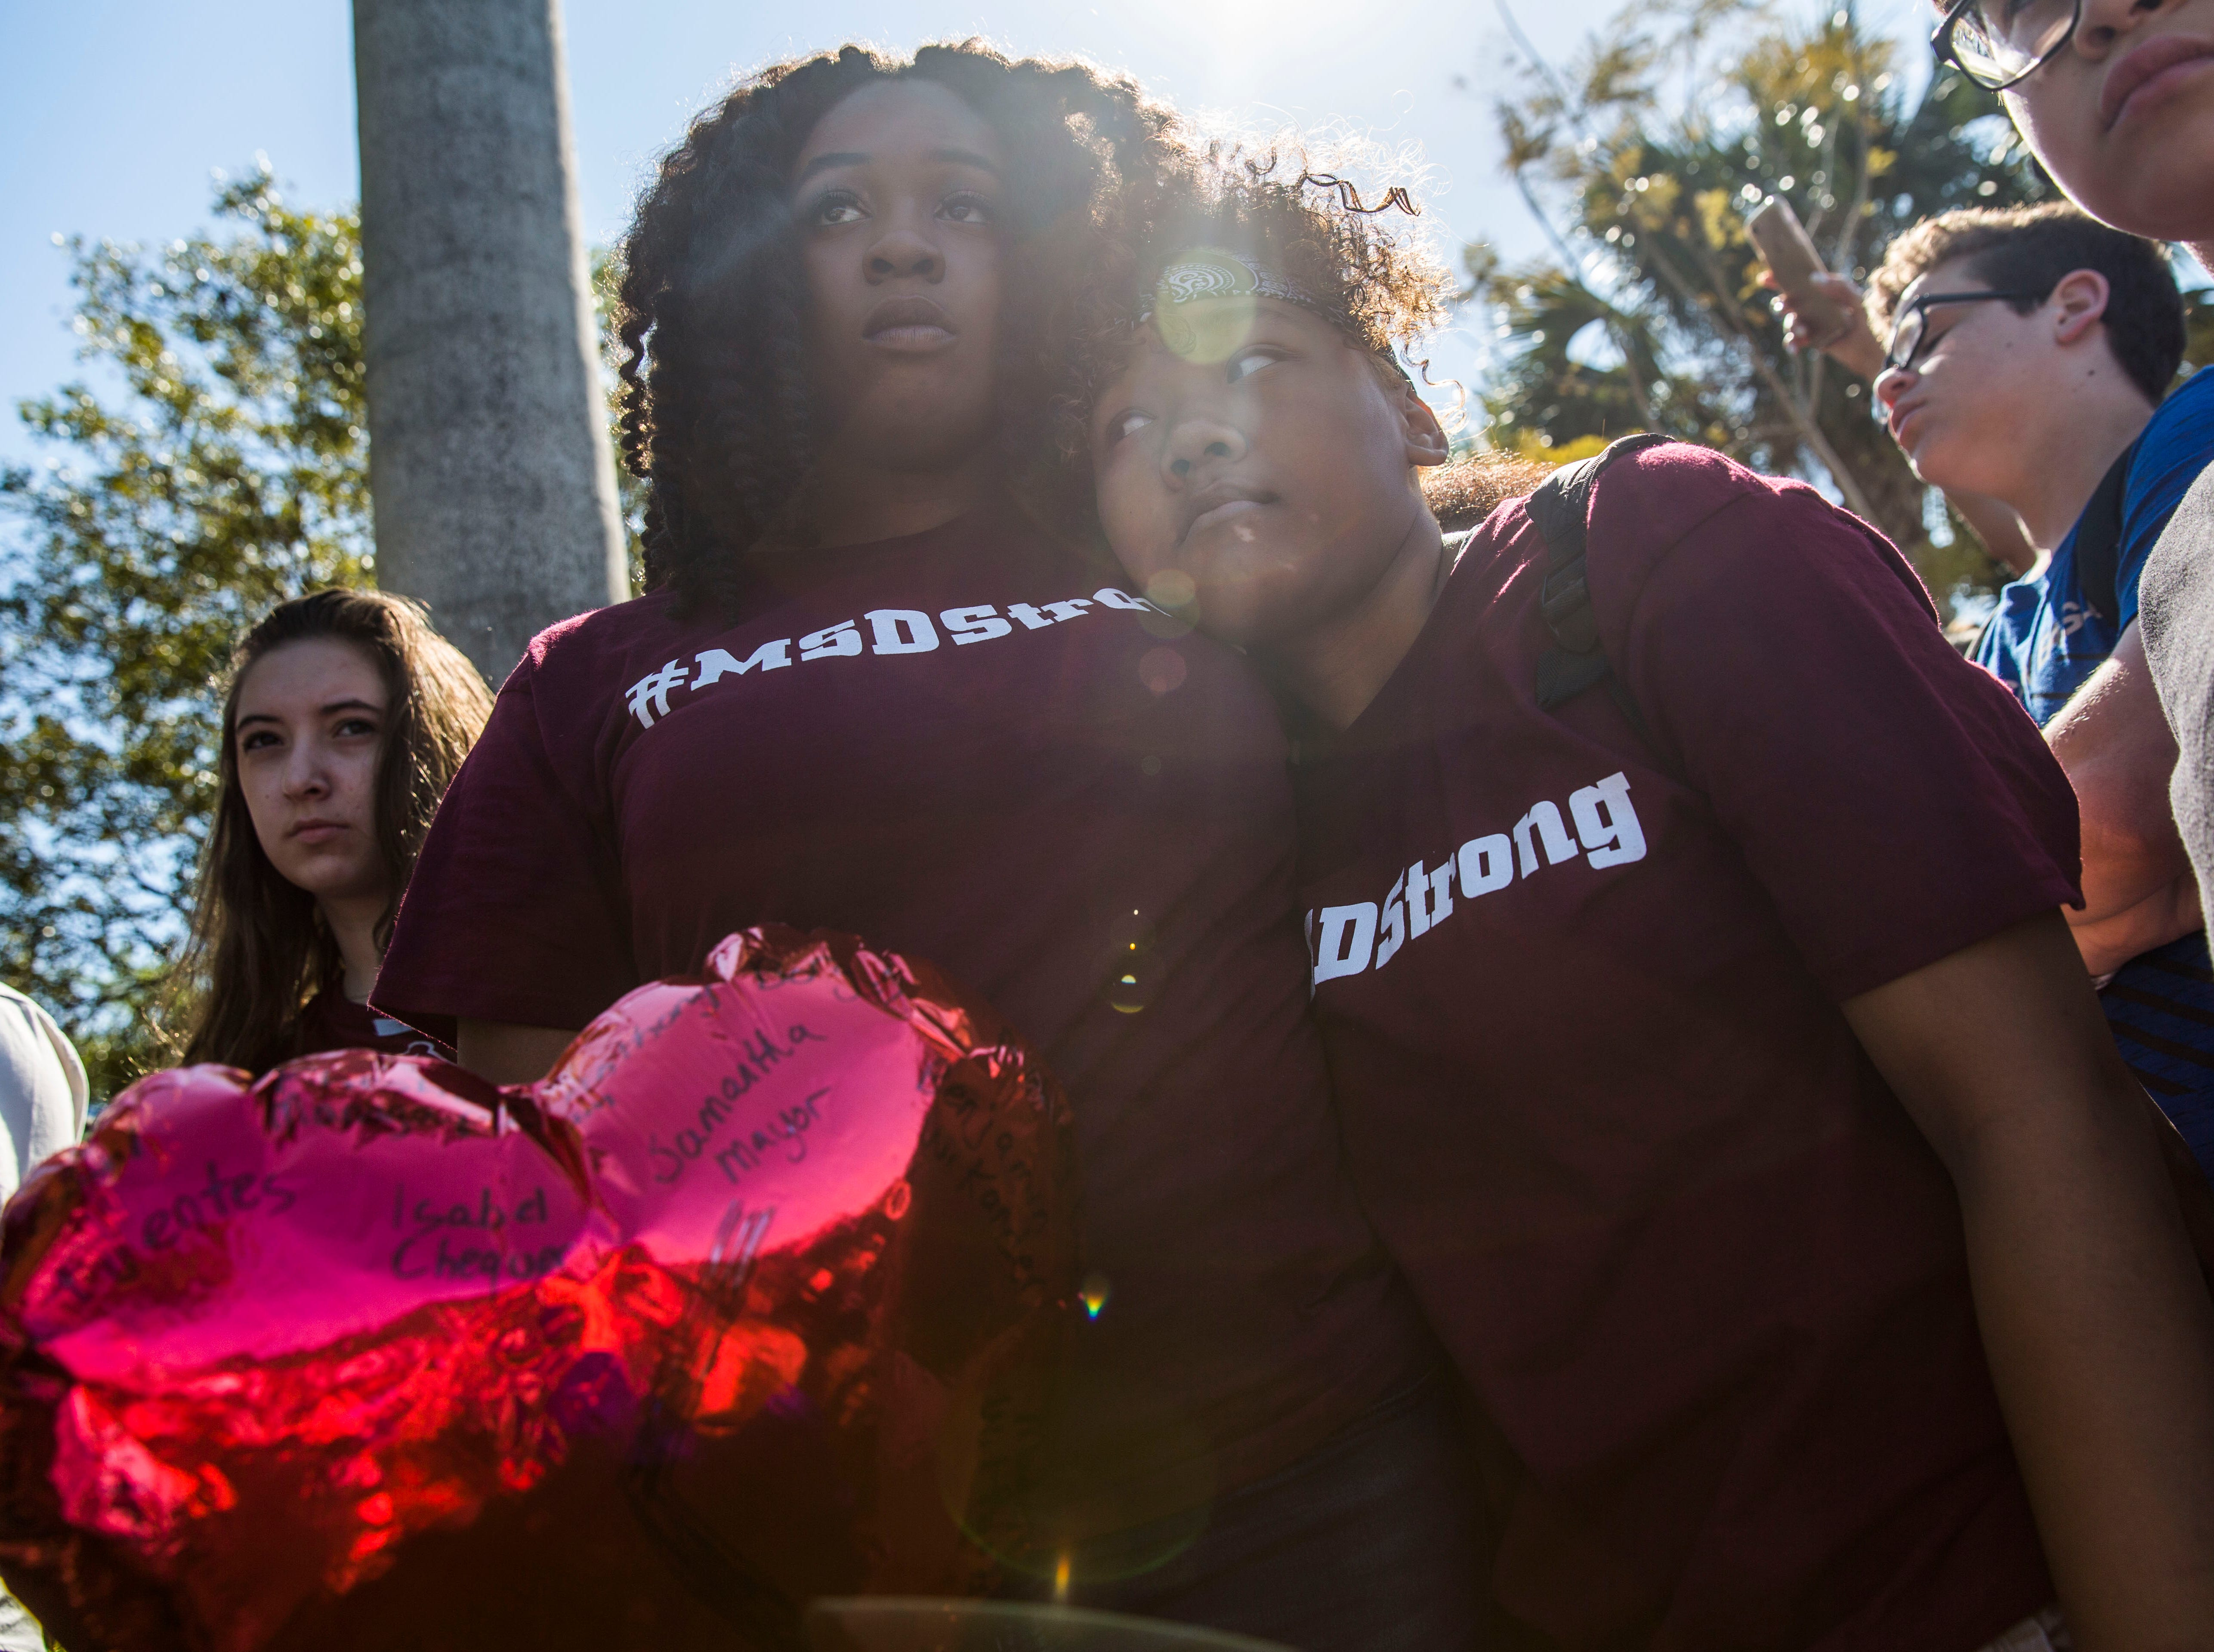 March 14, 2018: Mei-Ling Ho-Shing, left, and Erin LaVoix, right, listen to speakers at Pine Trails Park in Parkland, Fla. during the National School Walkout.